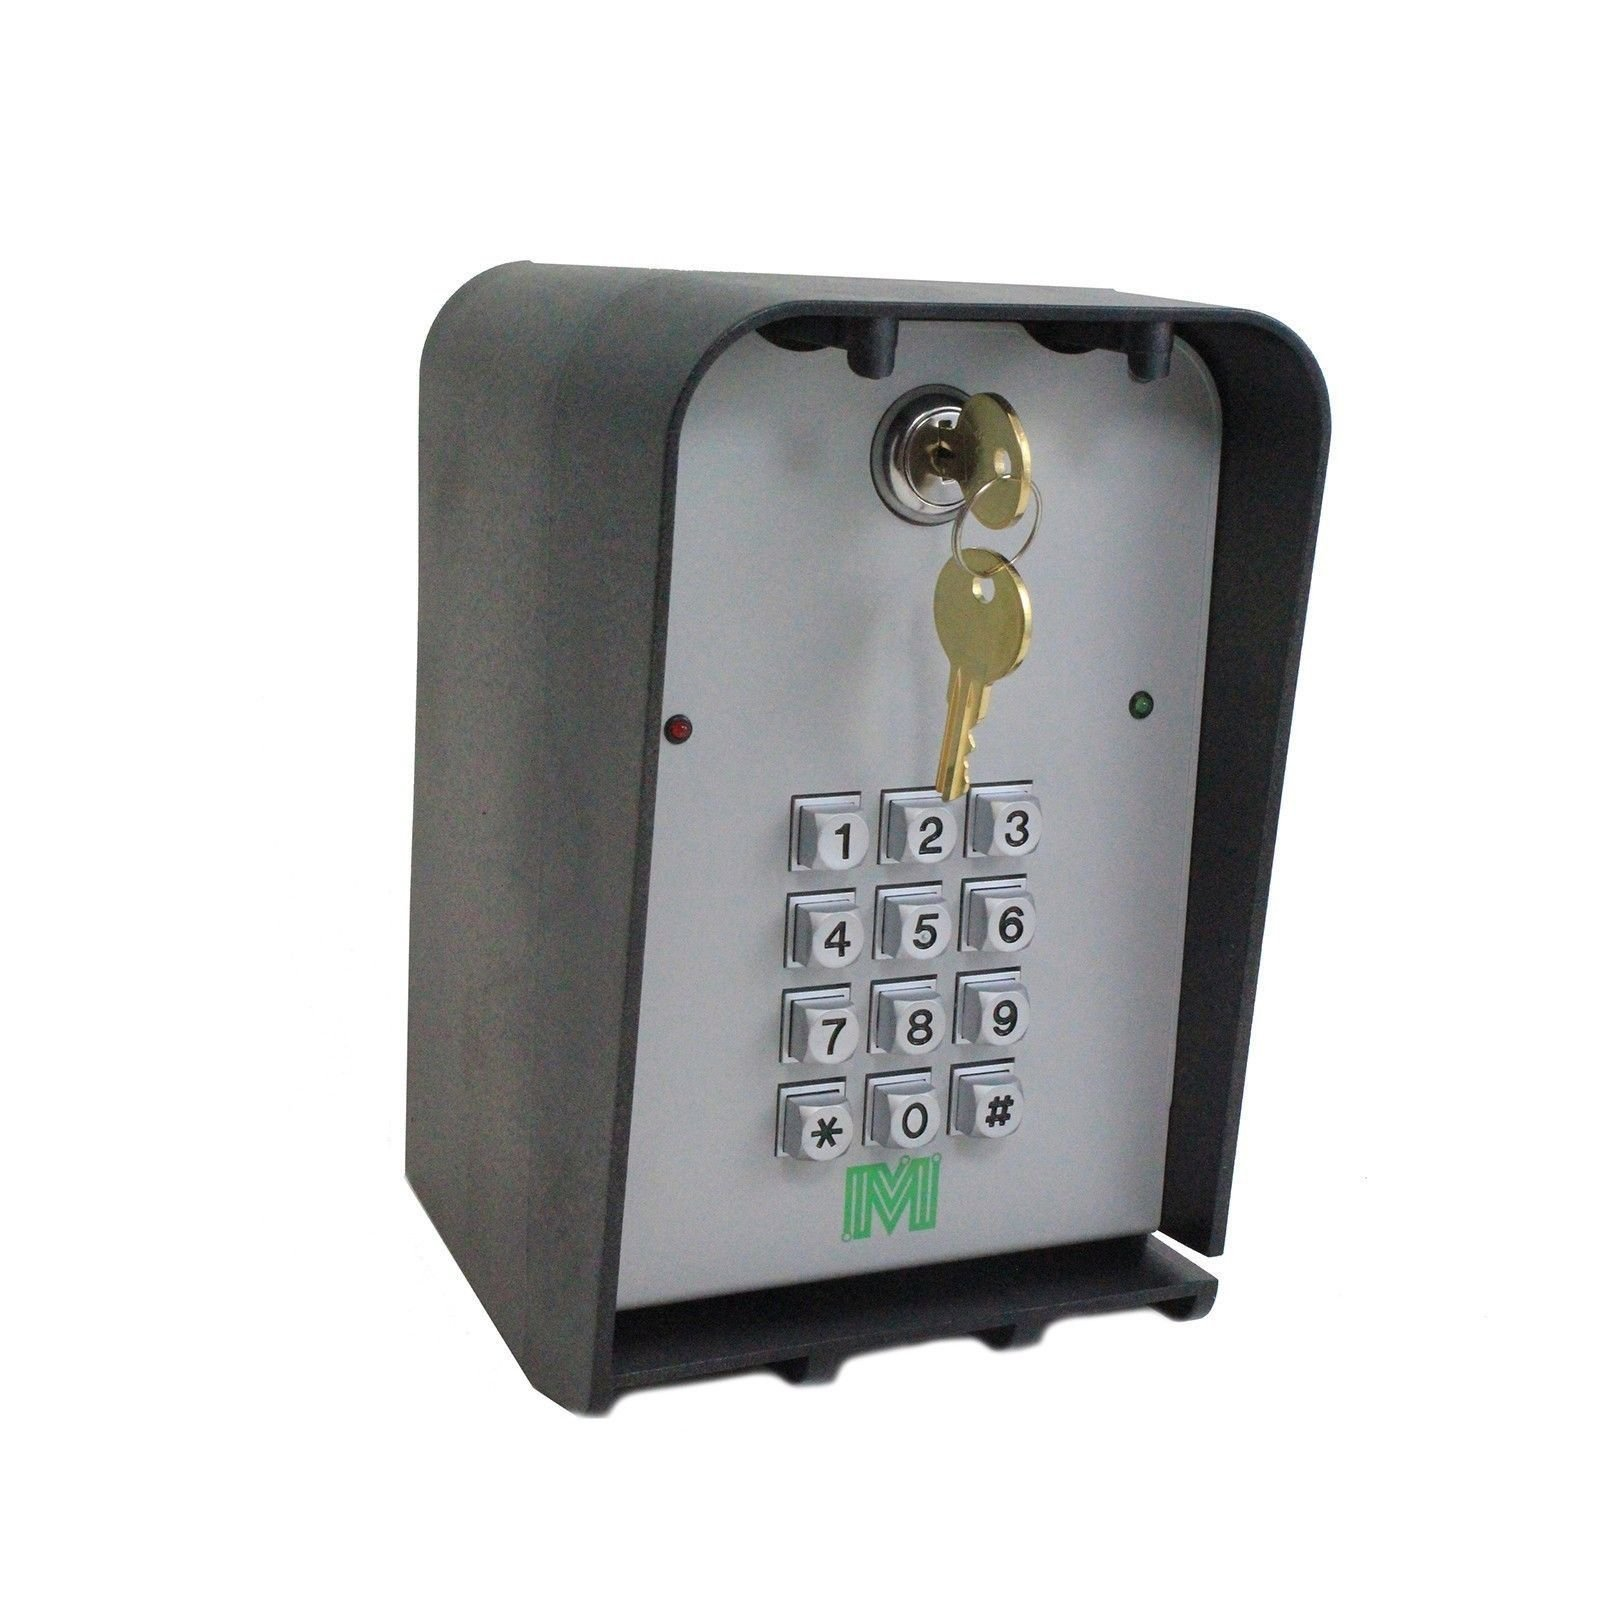 Apollo 951 Millennium Wireless Wire Keypad Nice 433.92 MHZ Garage Gate 1000 Code by Apollo (Image #1)